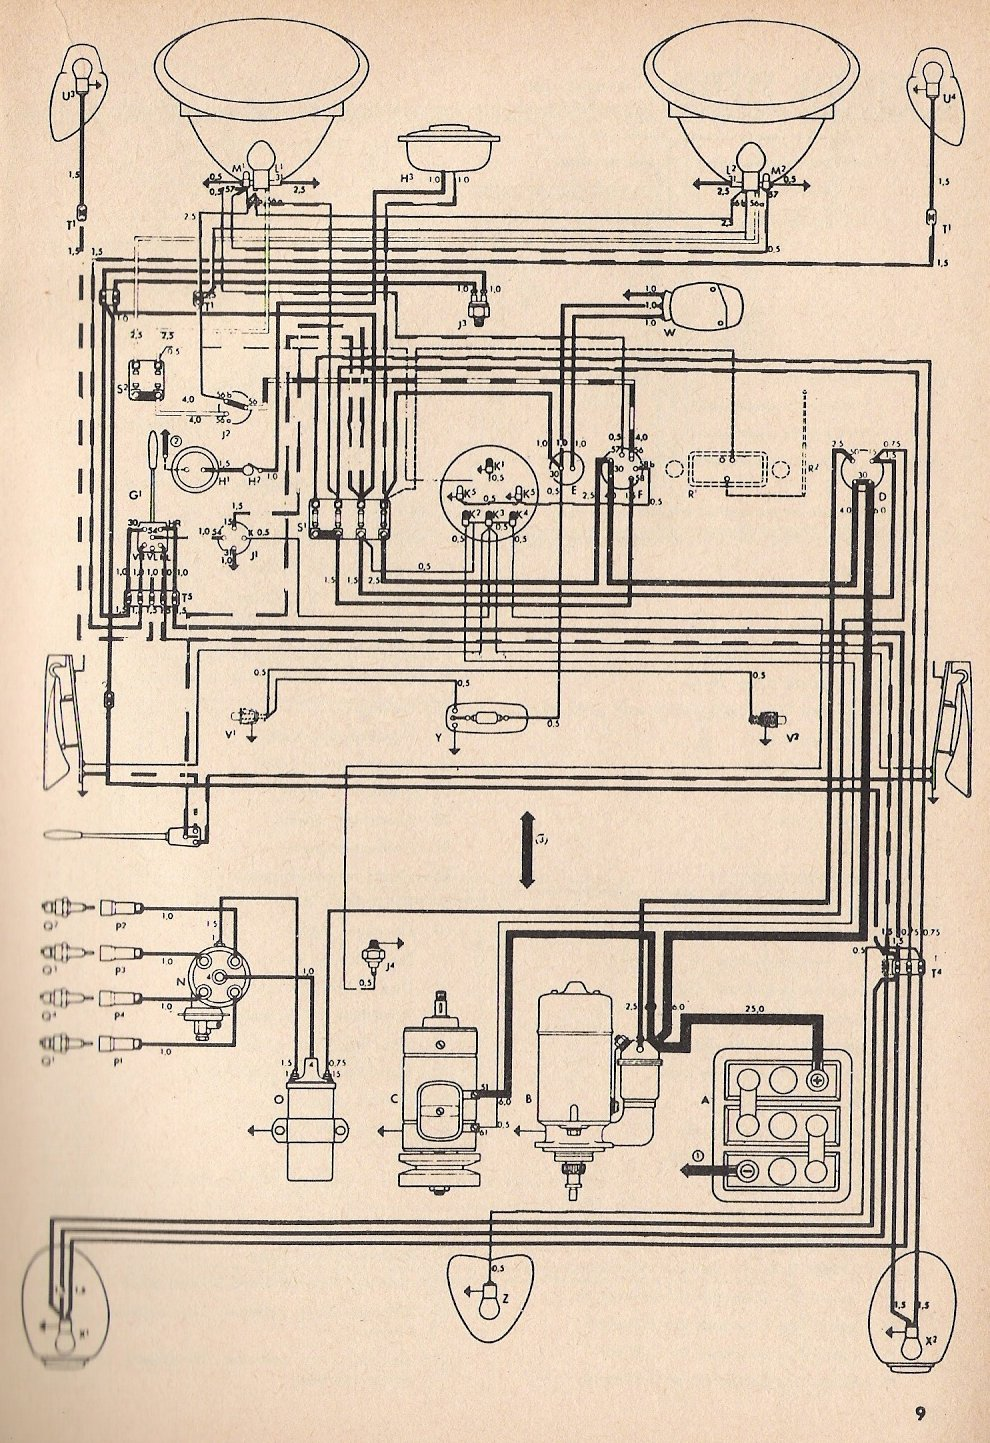 bug_toaug55 1955 beetle wiring diagram thegoldenbug com 1969 beetle wiring diagram at sewacar.co